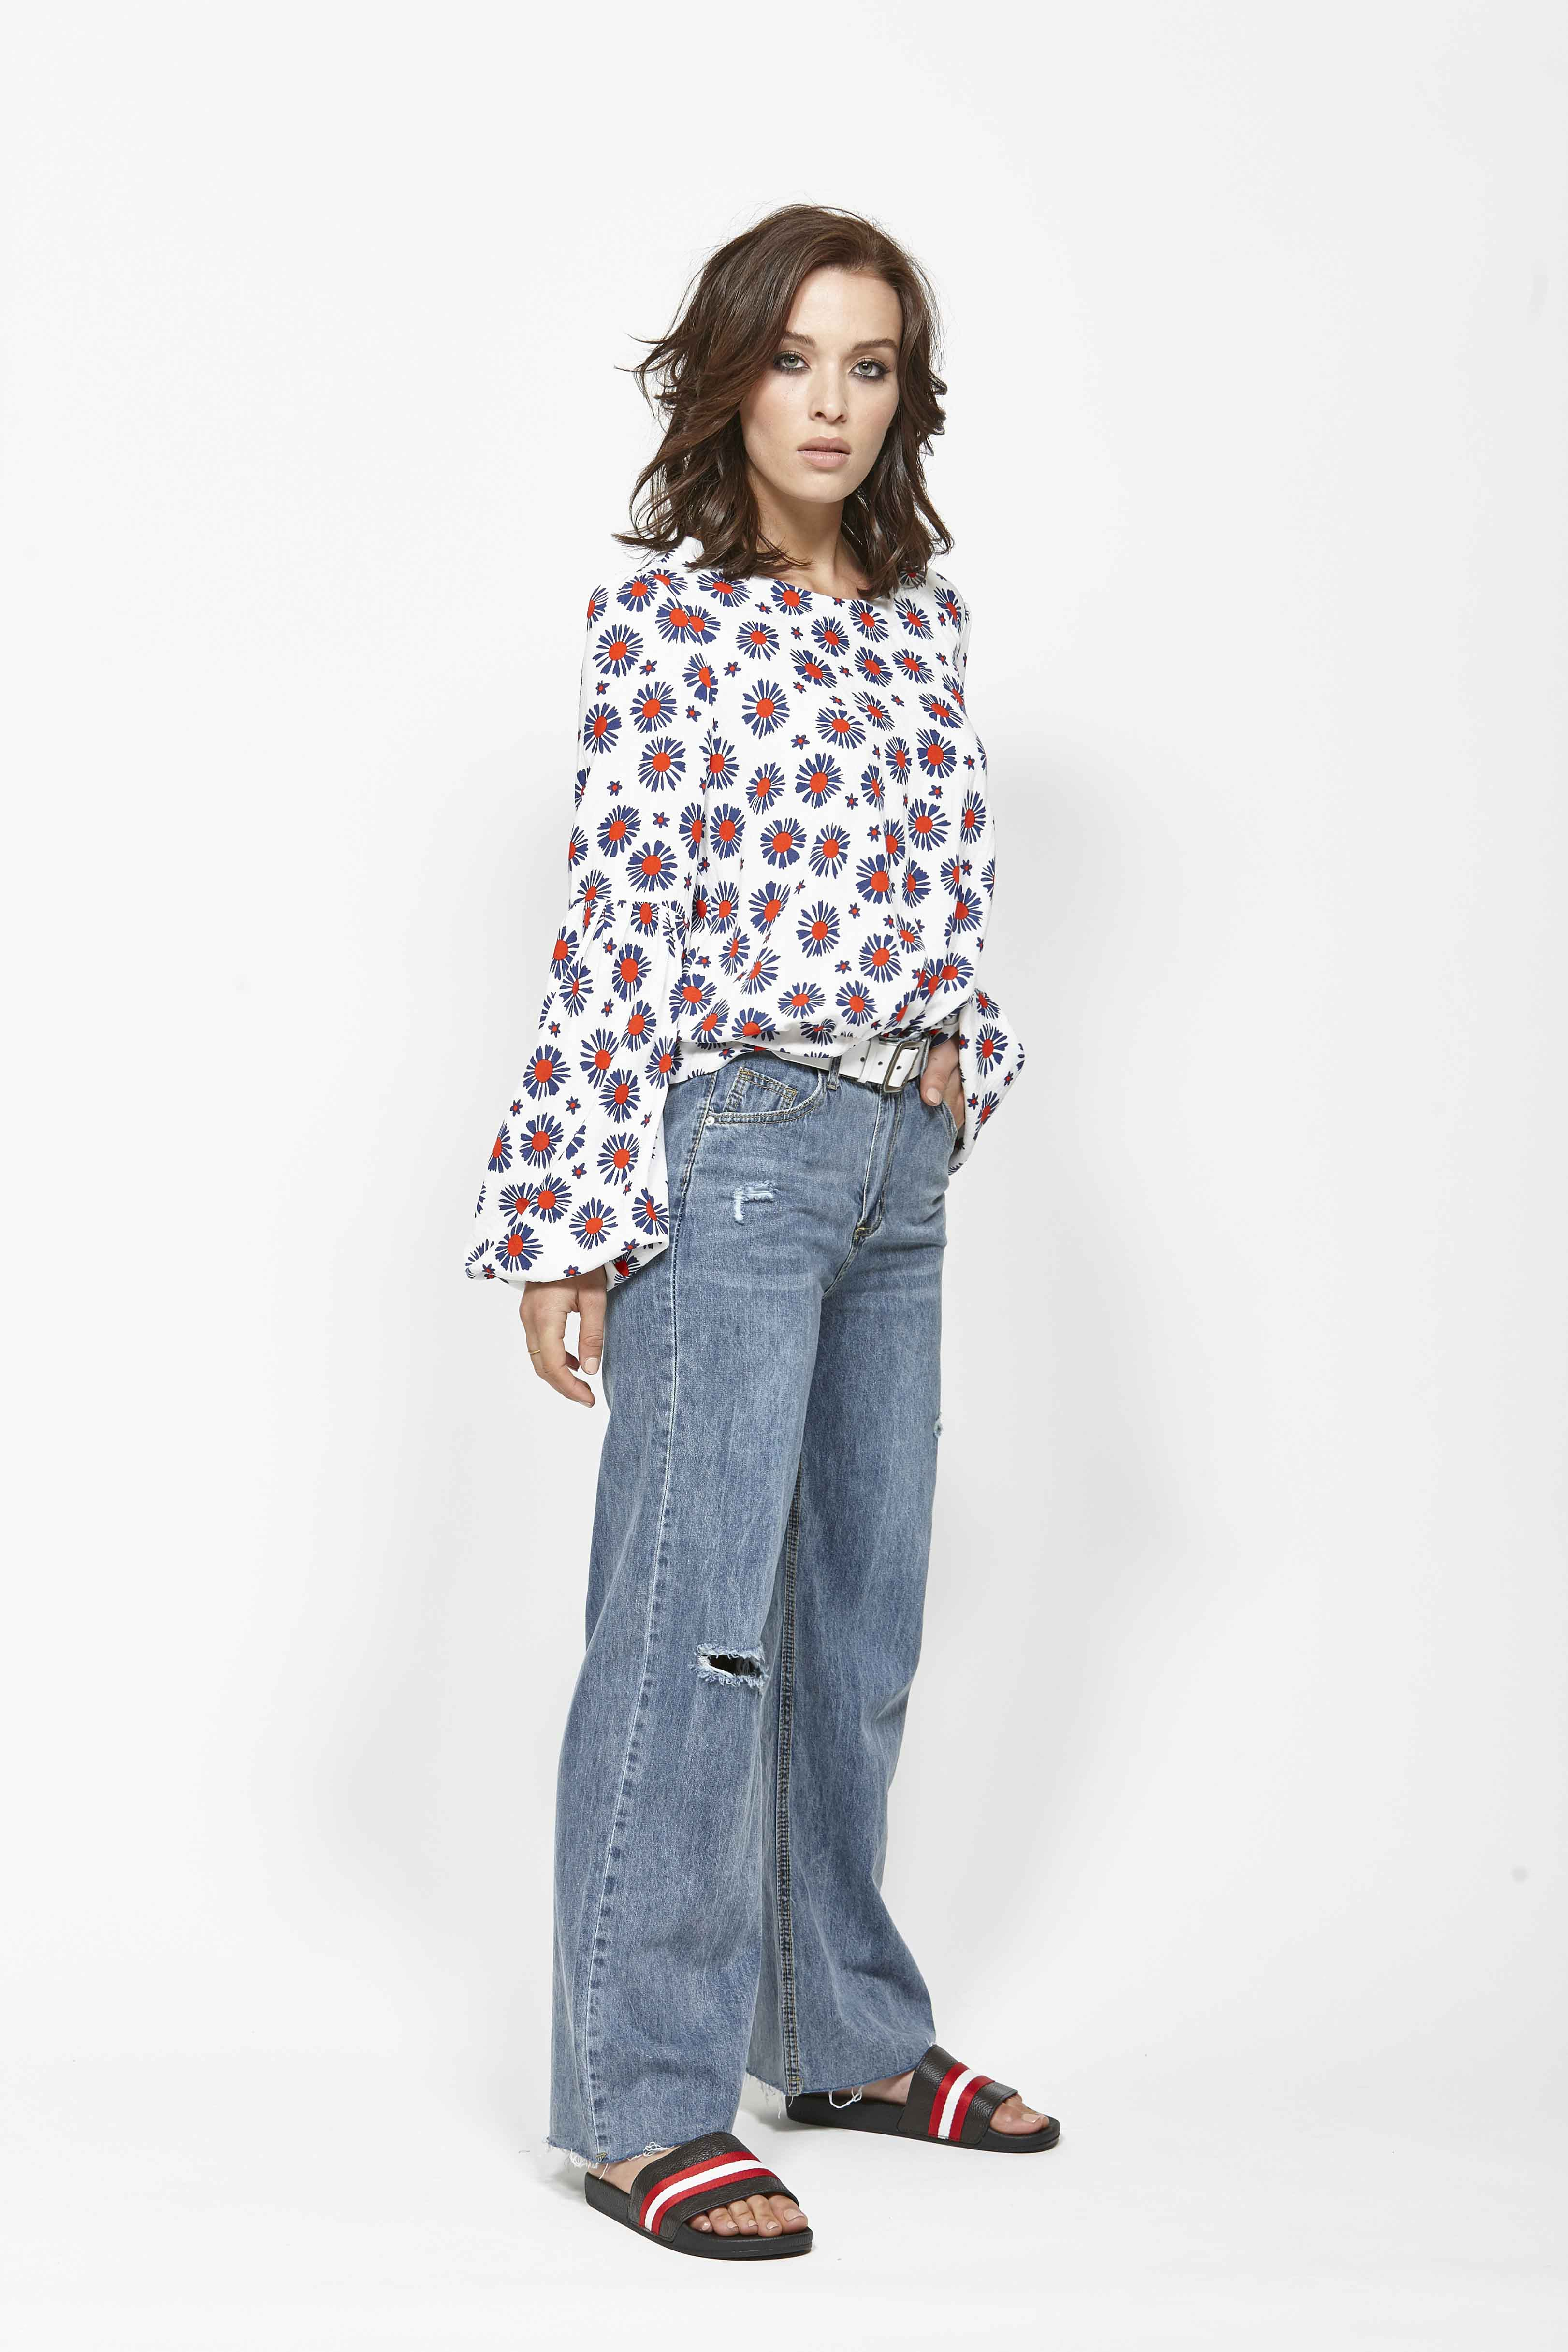 LEO+BE LB1353 Tactic Top, RRP$169.00 & LEO+BE LB1380 Wide Leg Jean, RRP$135.00